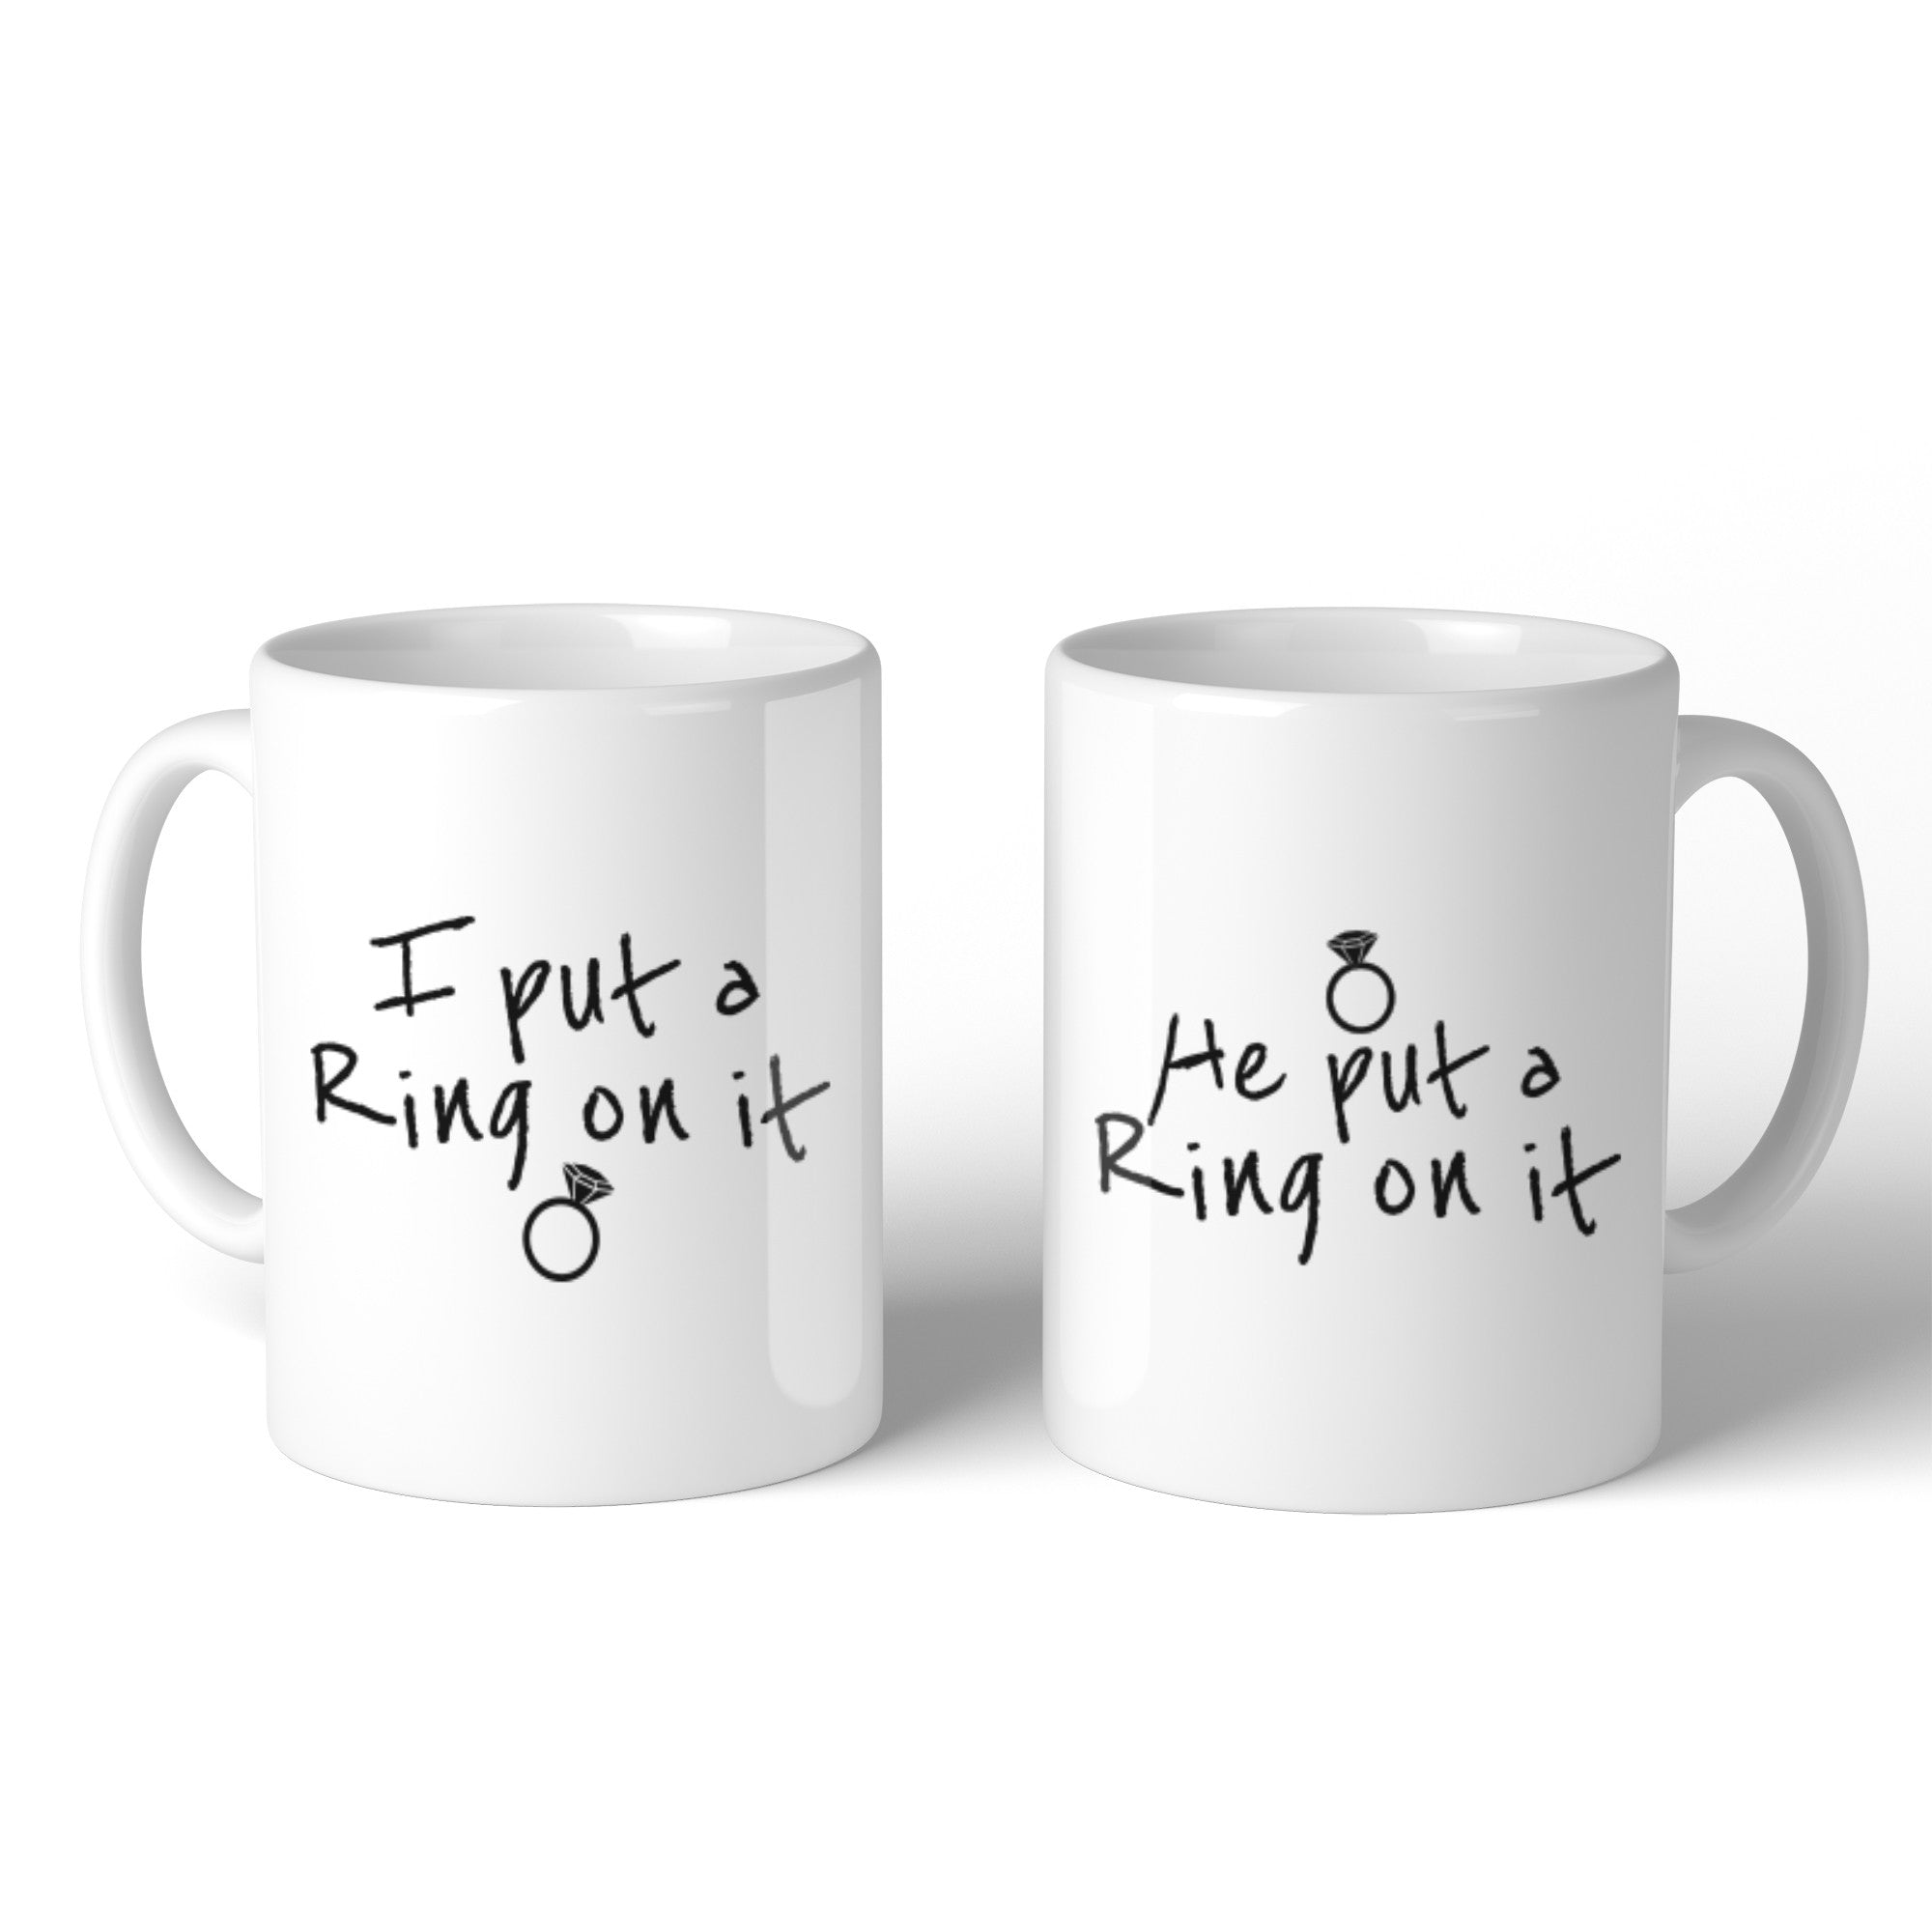 dfdc4673f couple loved one ones matching hubby wifey husband wife boyfriend  girlfriend fiancé. Ring On It Couple Mug ...